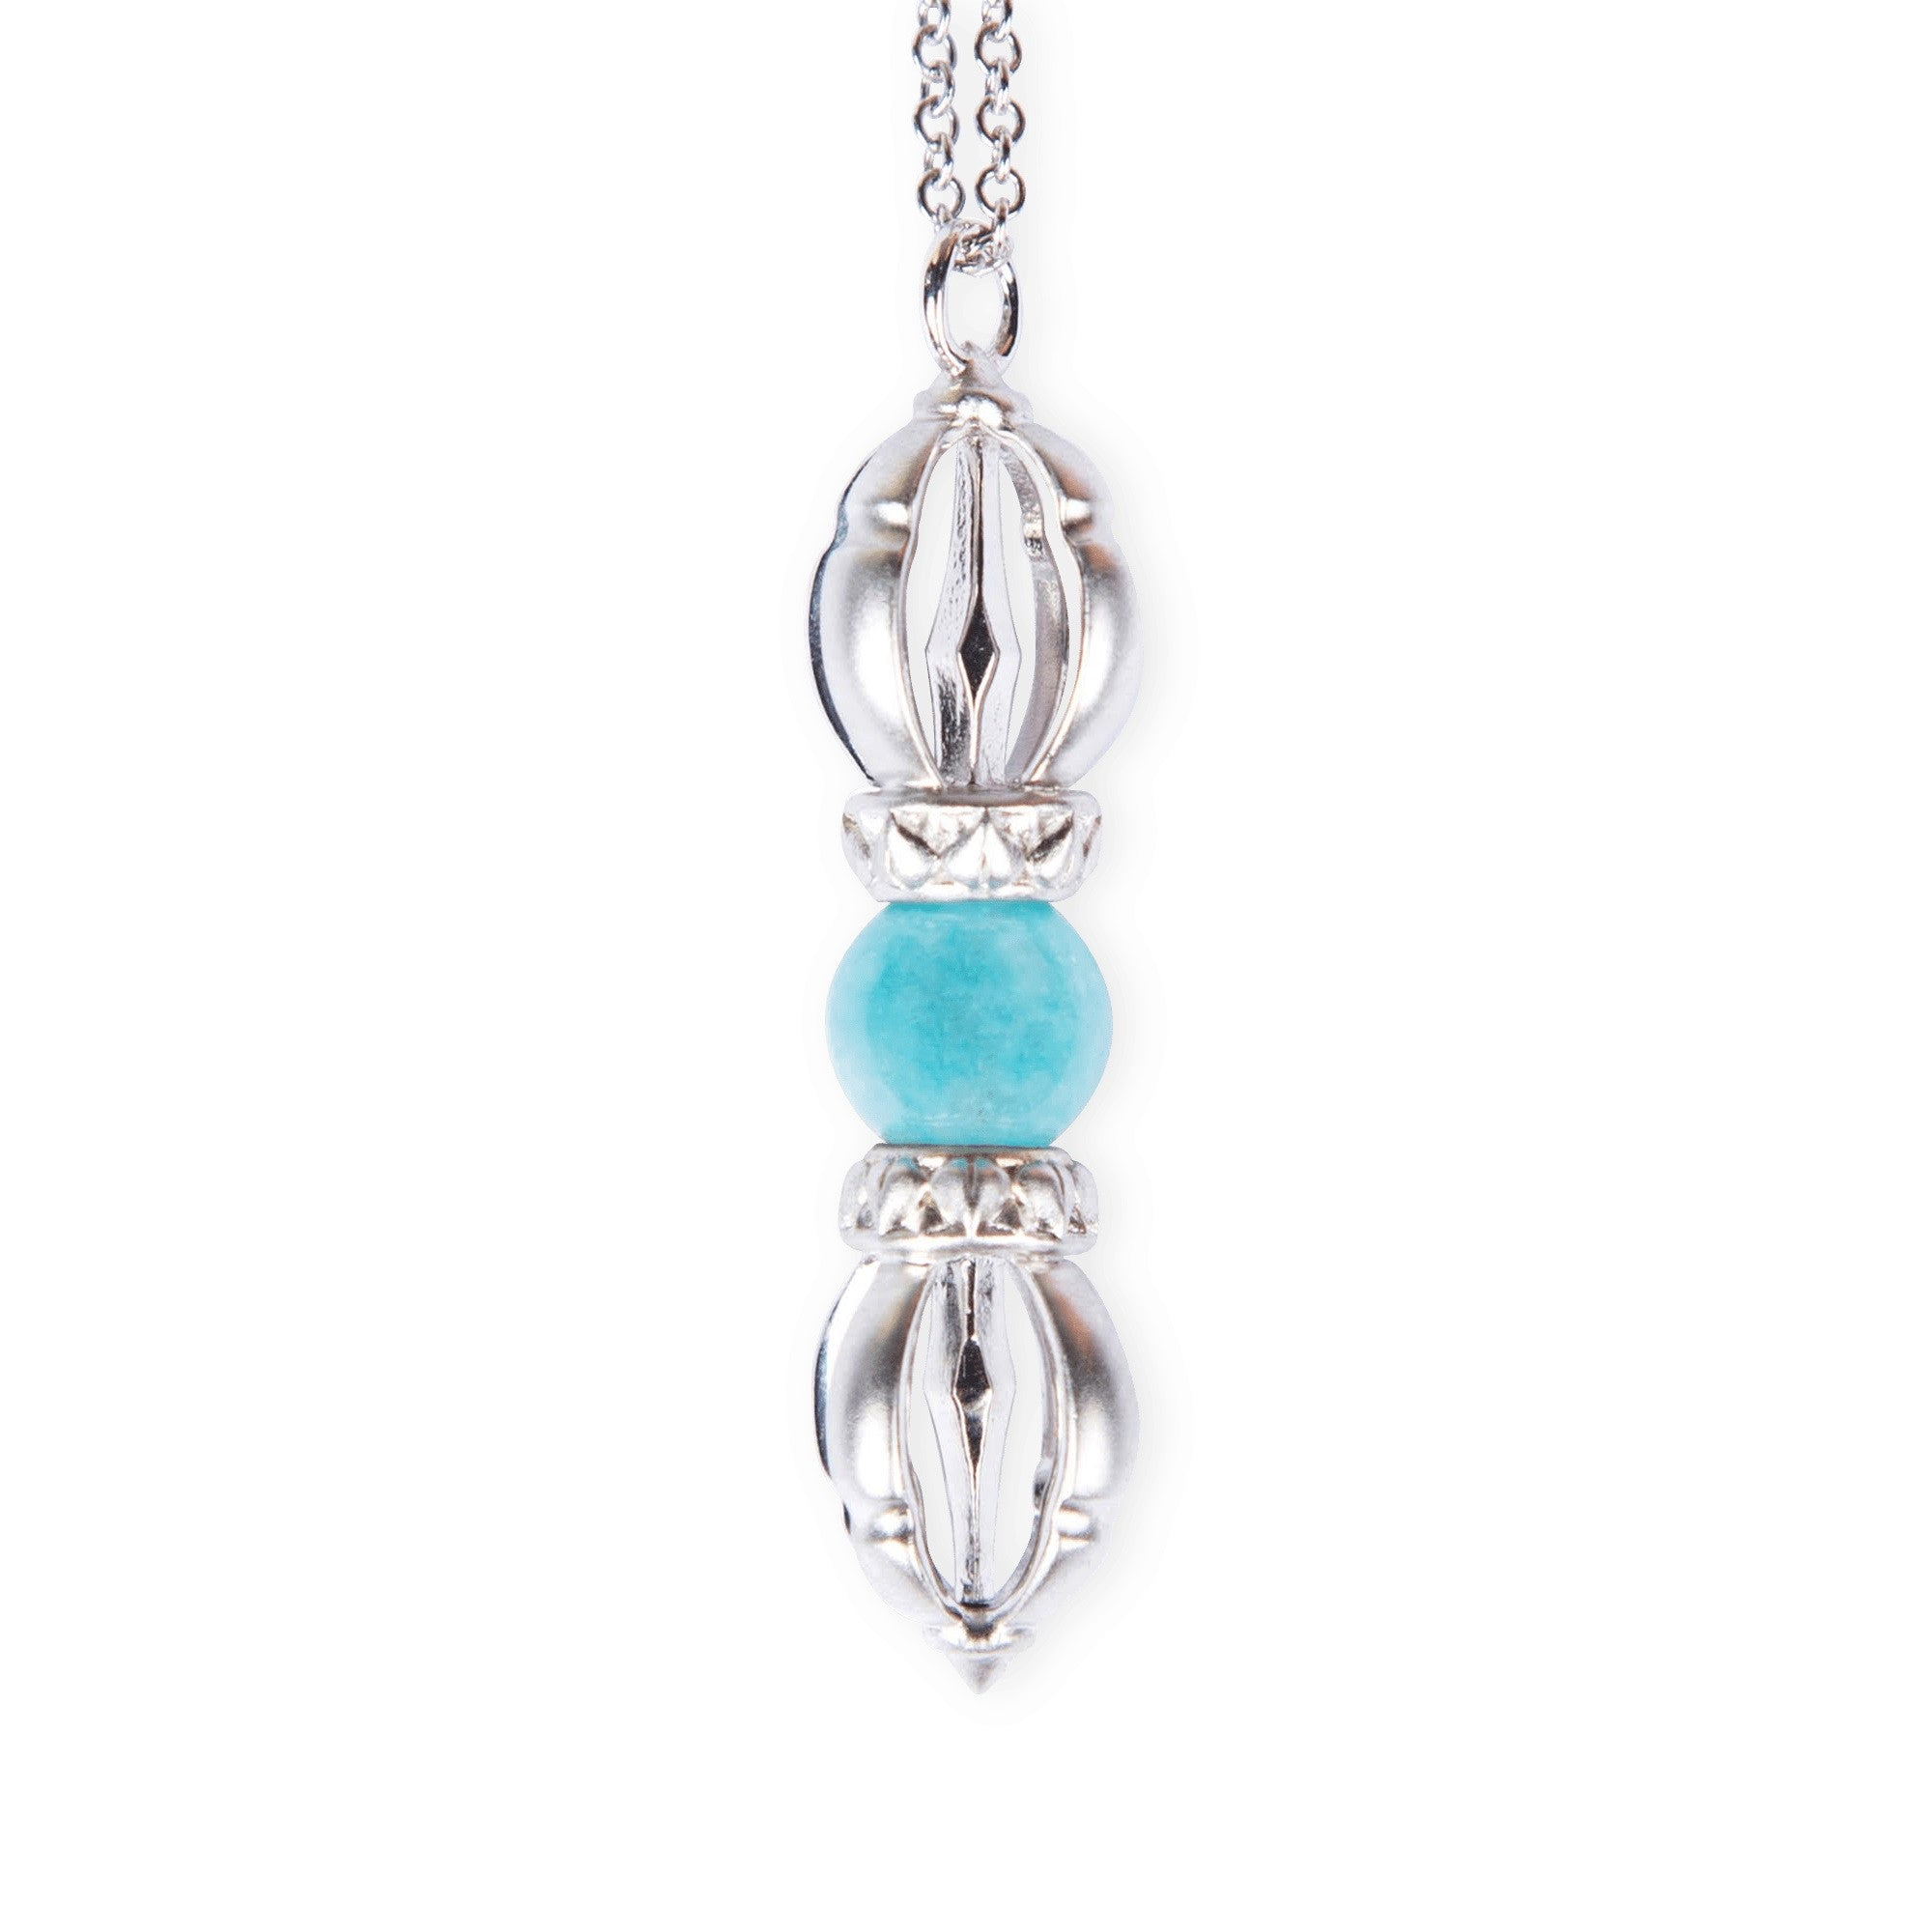 The white gold Silatha Aquamarine Dorje to grow flow, relief, reasoning and calm. Paired with a meditation course.